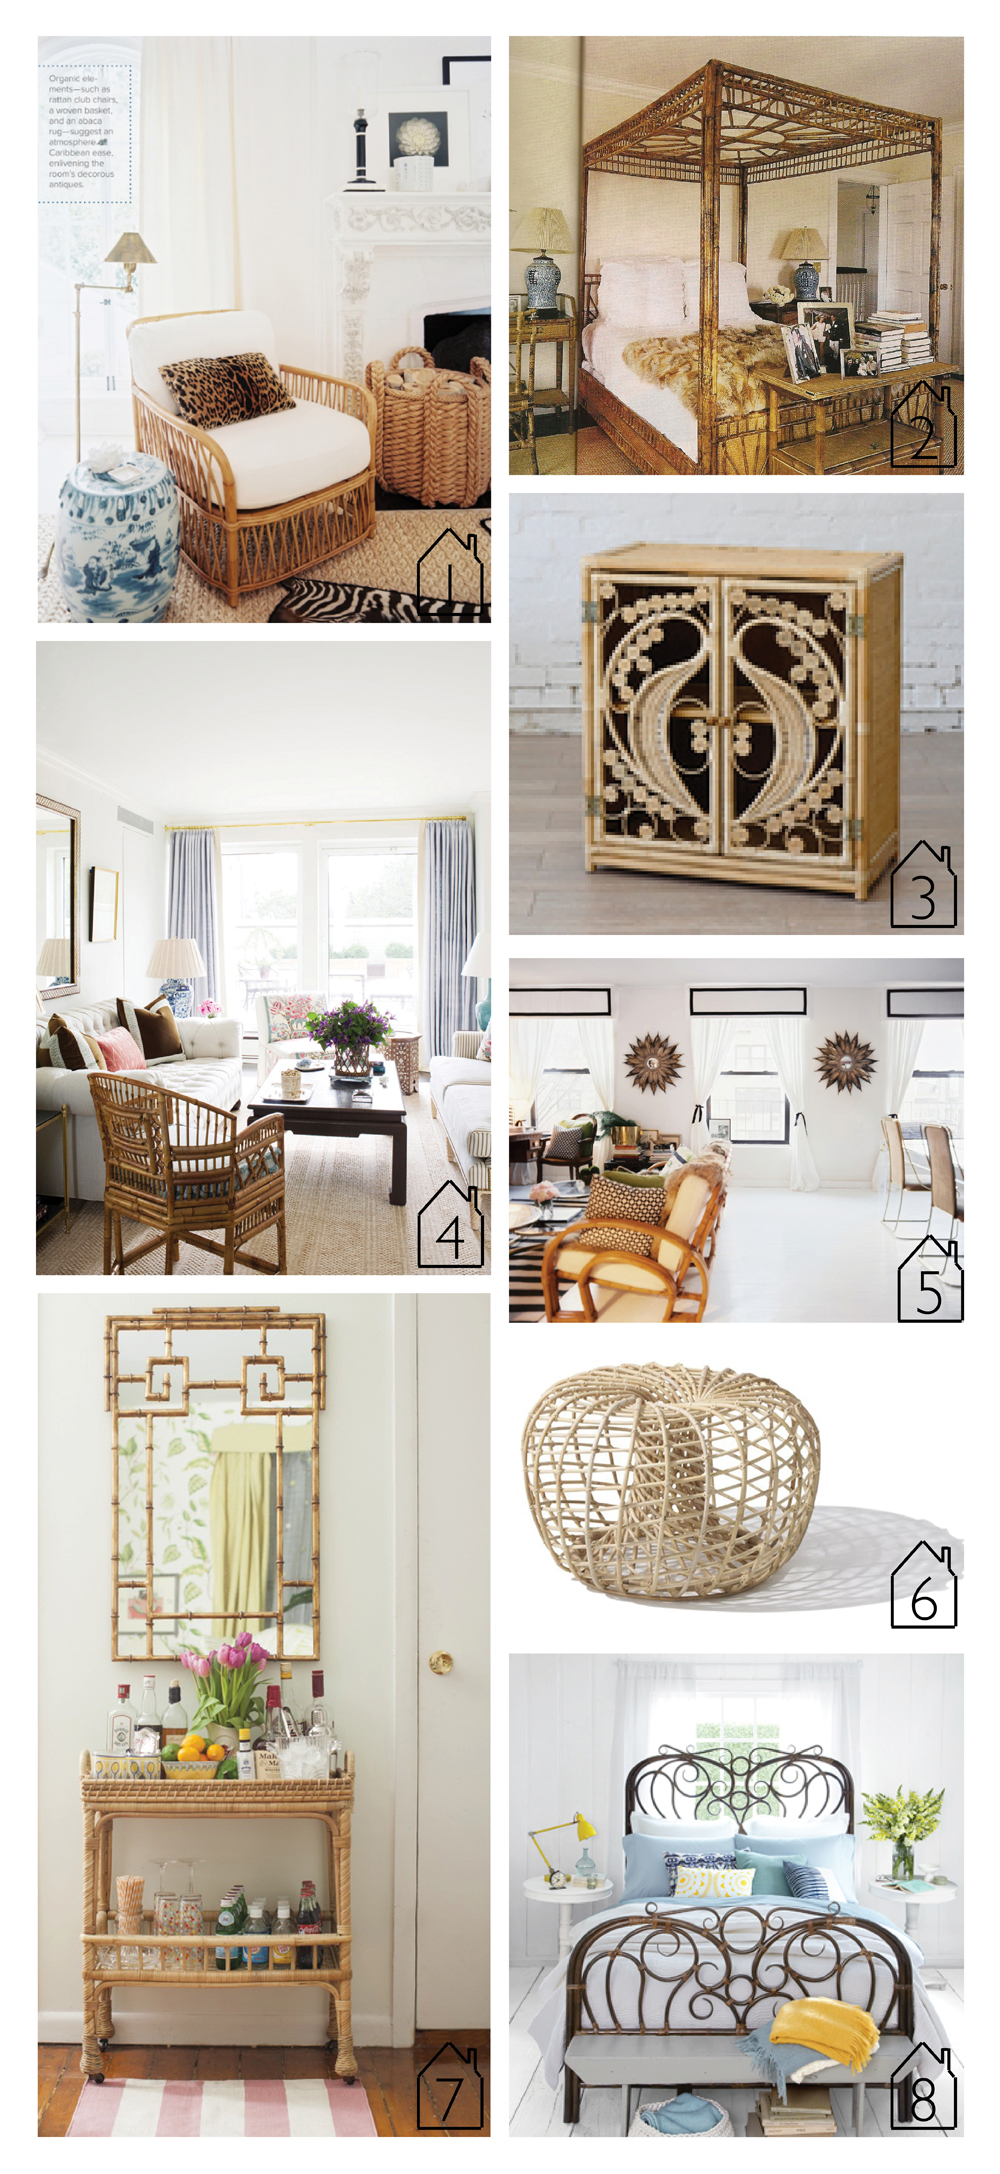 1. home of and design by  Mark D. Sikes  via  Lonny   2. home of and design by James and Whitney Fairchild via  House & Garden  - photo by Francois Herald   3. peacock cabinet natural by  The Family Love Tree   4. design by  Ashley Whittaker    5. home and design by Anna Burke via  Lonny   6. rattan pouf nest via  archiproducts   7.  serena and lily south seas bar cart  via  matchbook magazine  8.  anthropologie radana rattan  bed via  Country Living